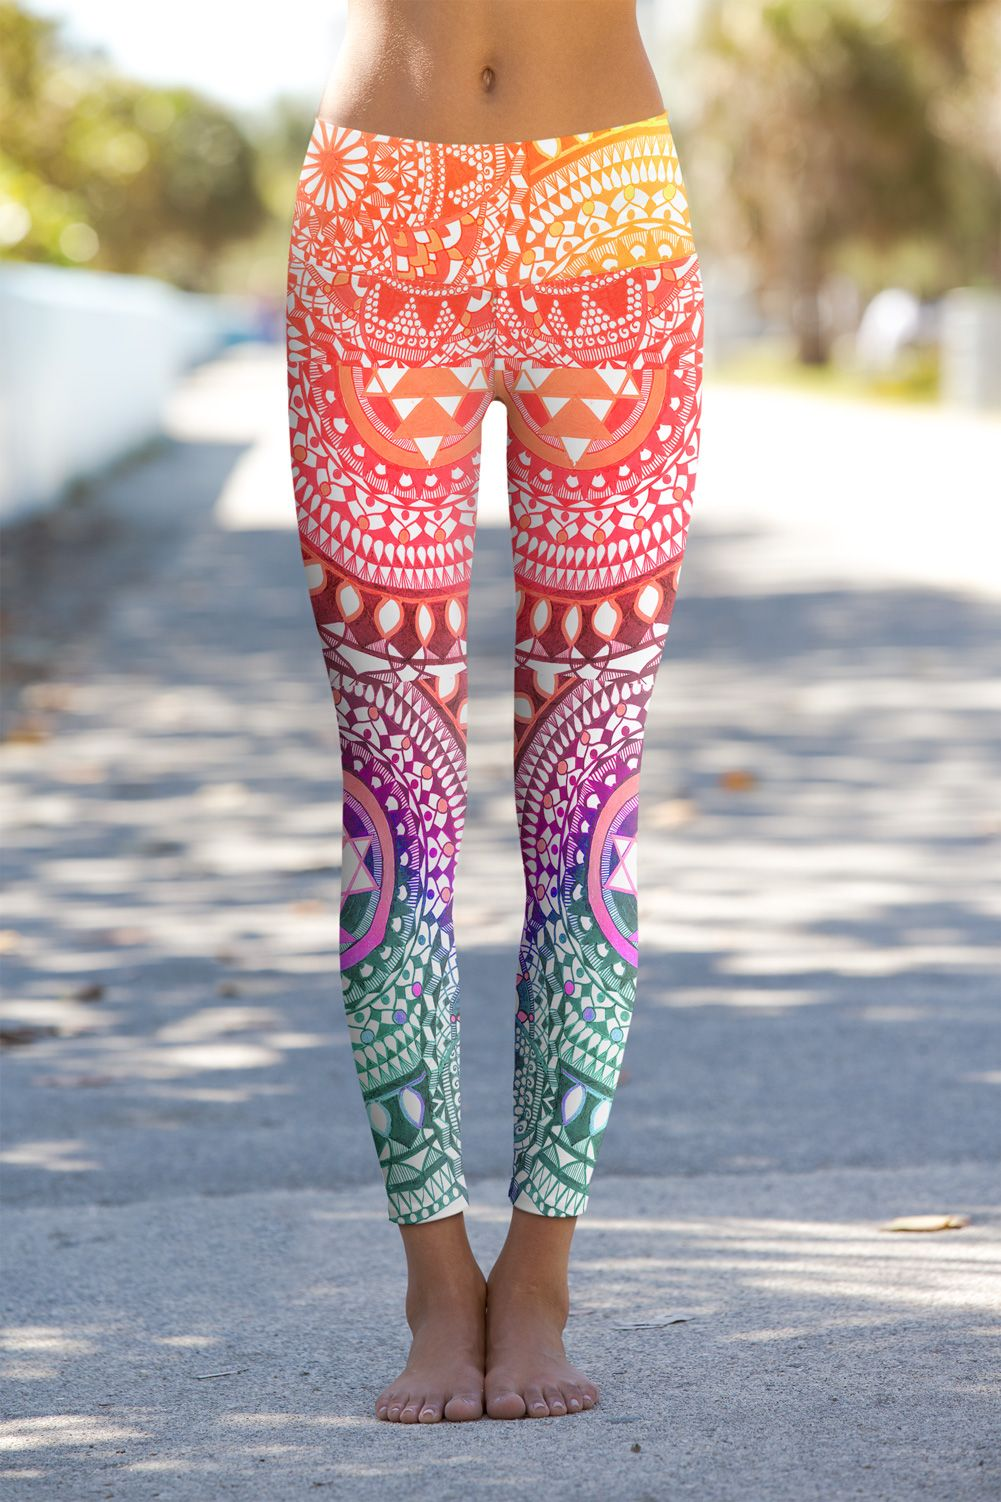 22597208f02b73 $29.90 Chakra Flowers yoga leggings with a vibrant pattern and colors to  infuse your spirit with vibrant, positive energy. Positive vibes made into  a ...